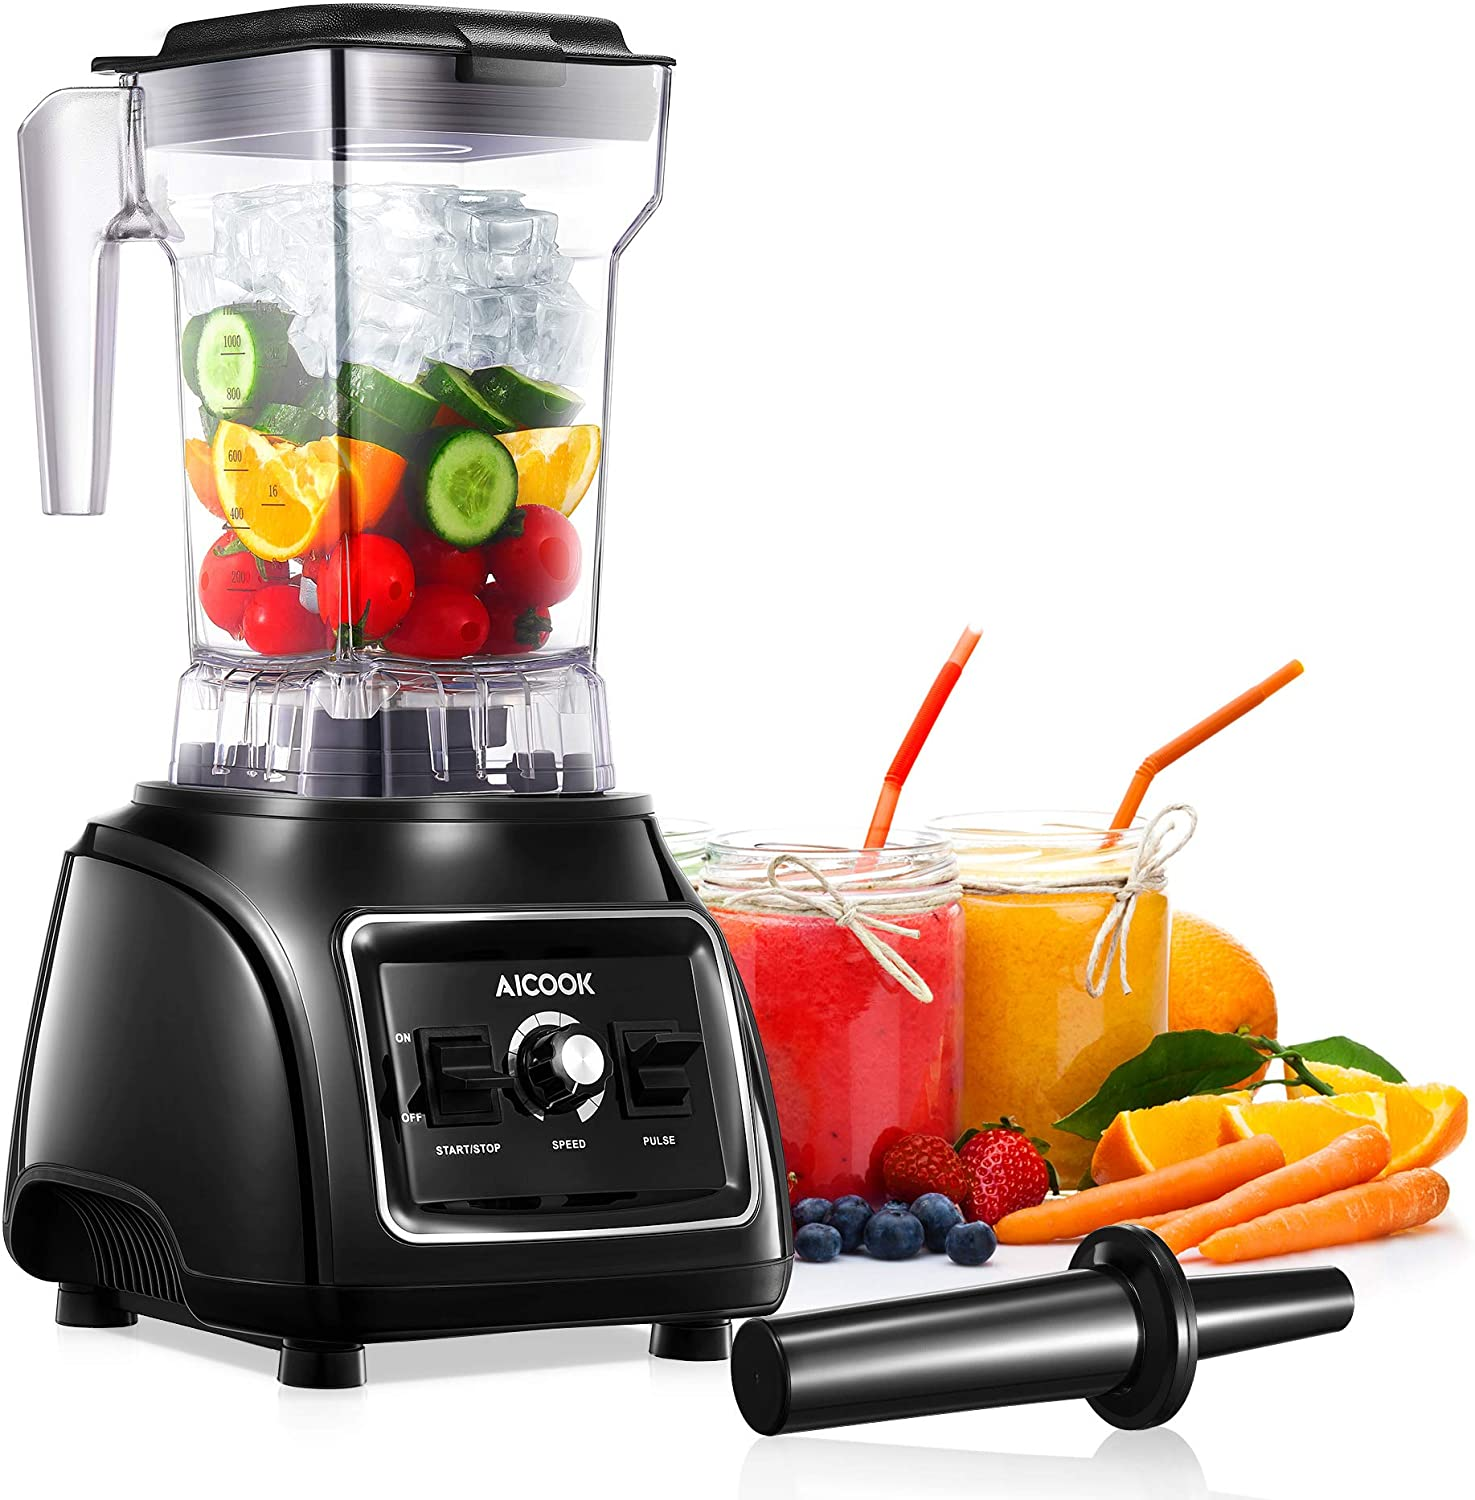 Countertop Blenders Smoothie Blender Maker for Kitchen Ice Crush Blender for Shakes and Smoothies Frozen Fruit with 32oz BPA Free Tritan Pitcher, 316 Stainless Steel Blades, Peak 1800W, AICOOK